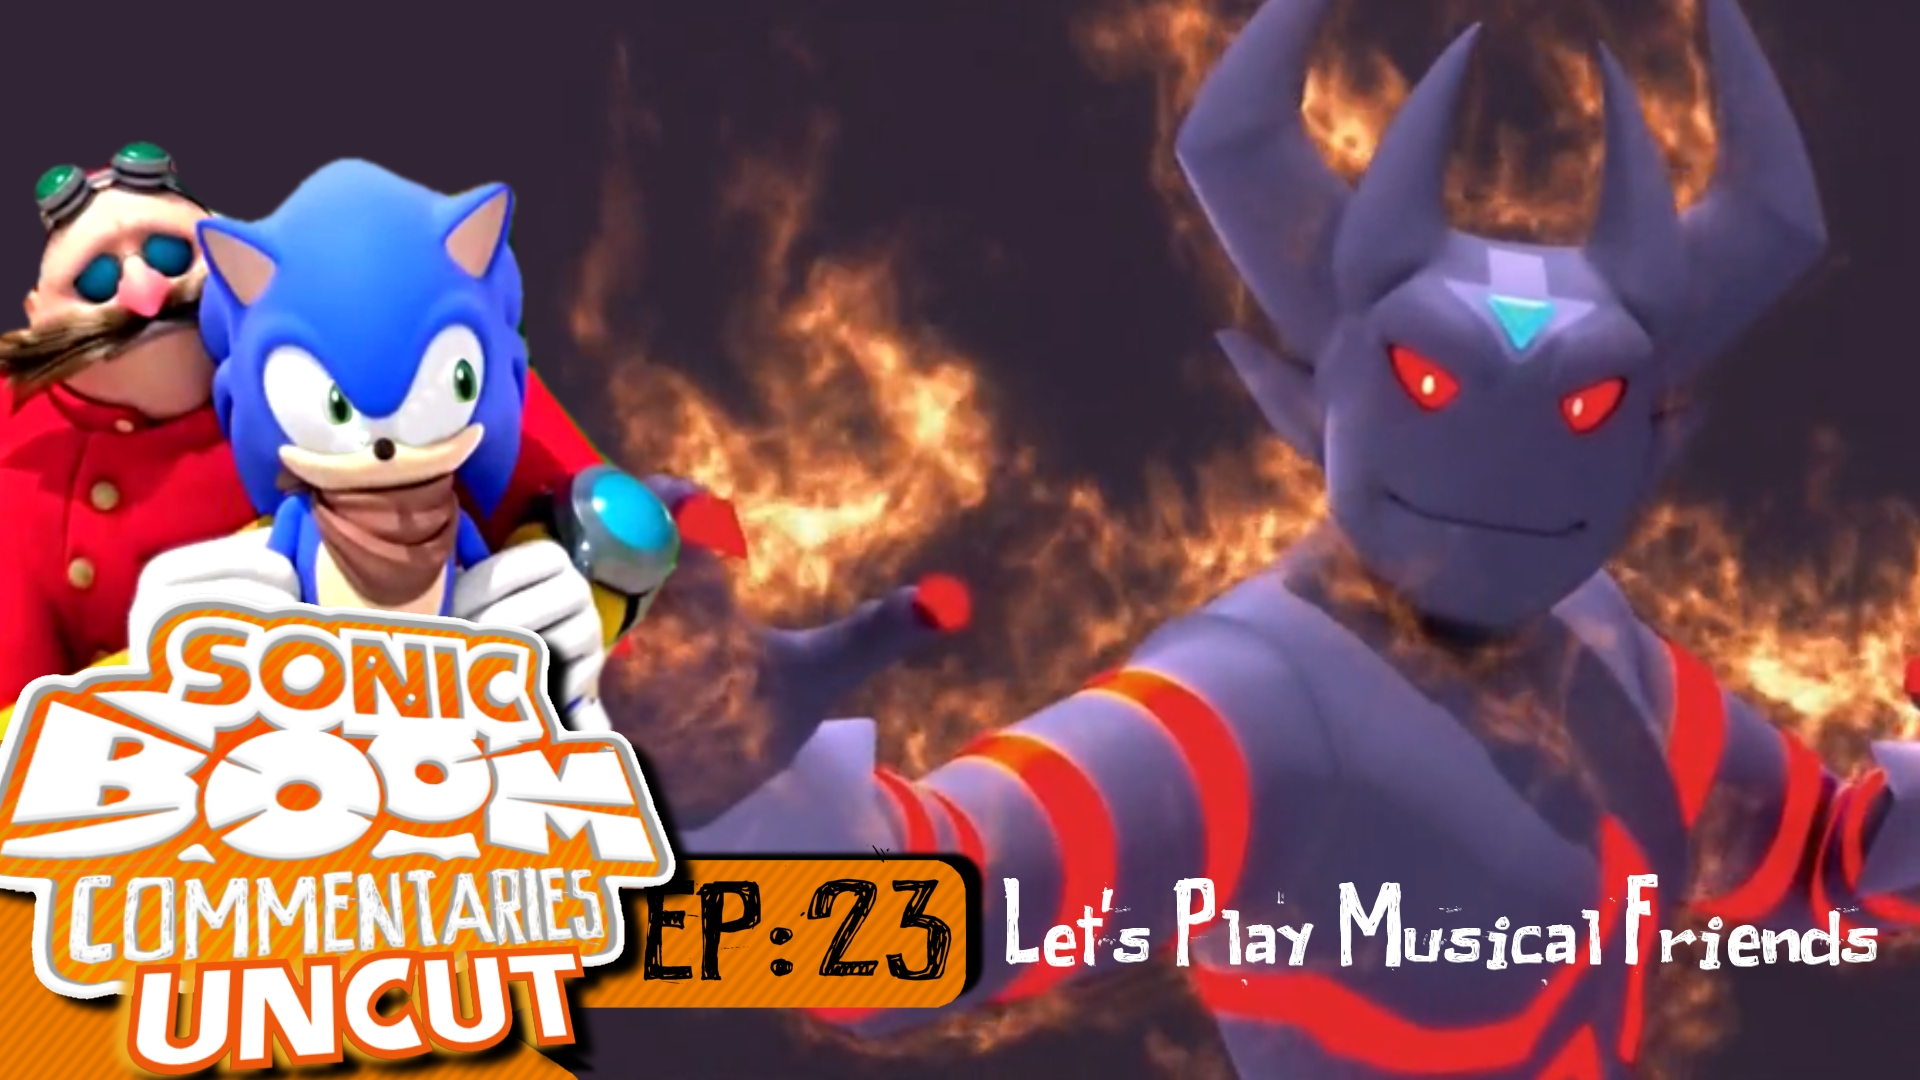 Sonic Boom Commentaries Uncut: 23 – Let's Play Musical Friends